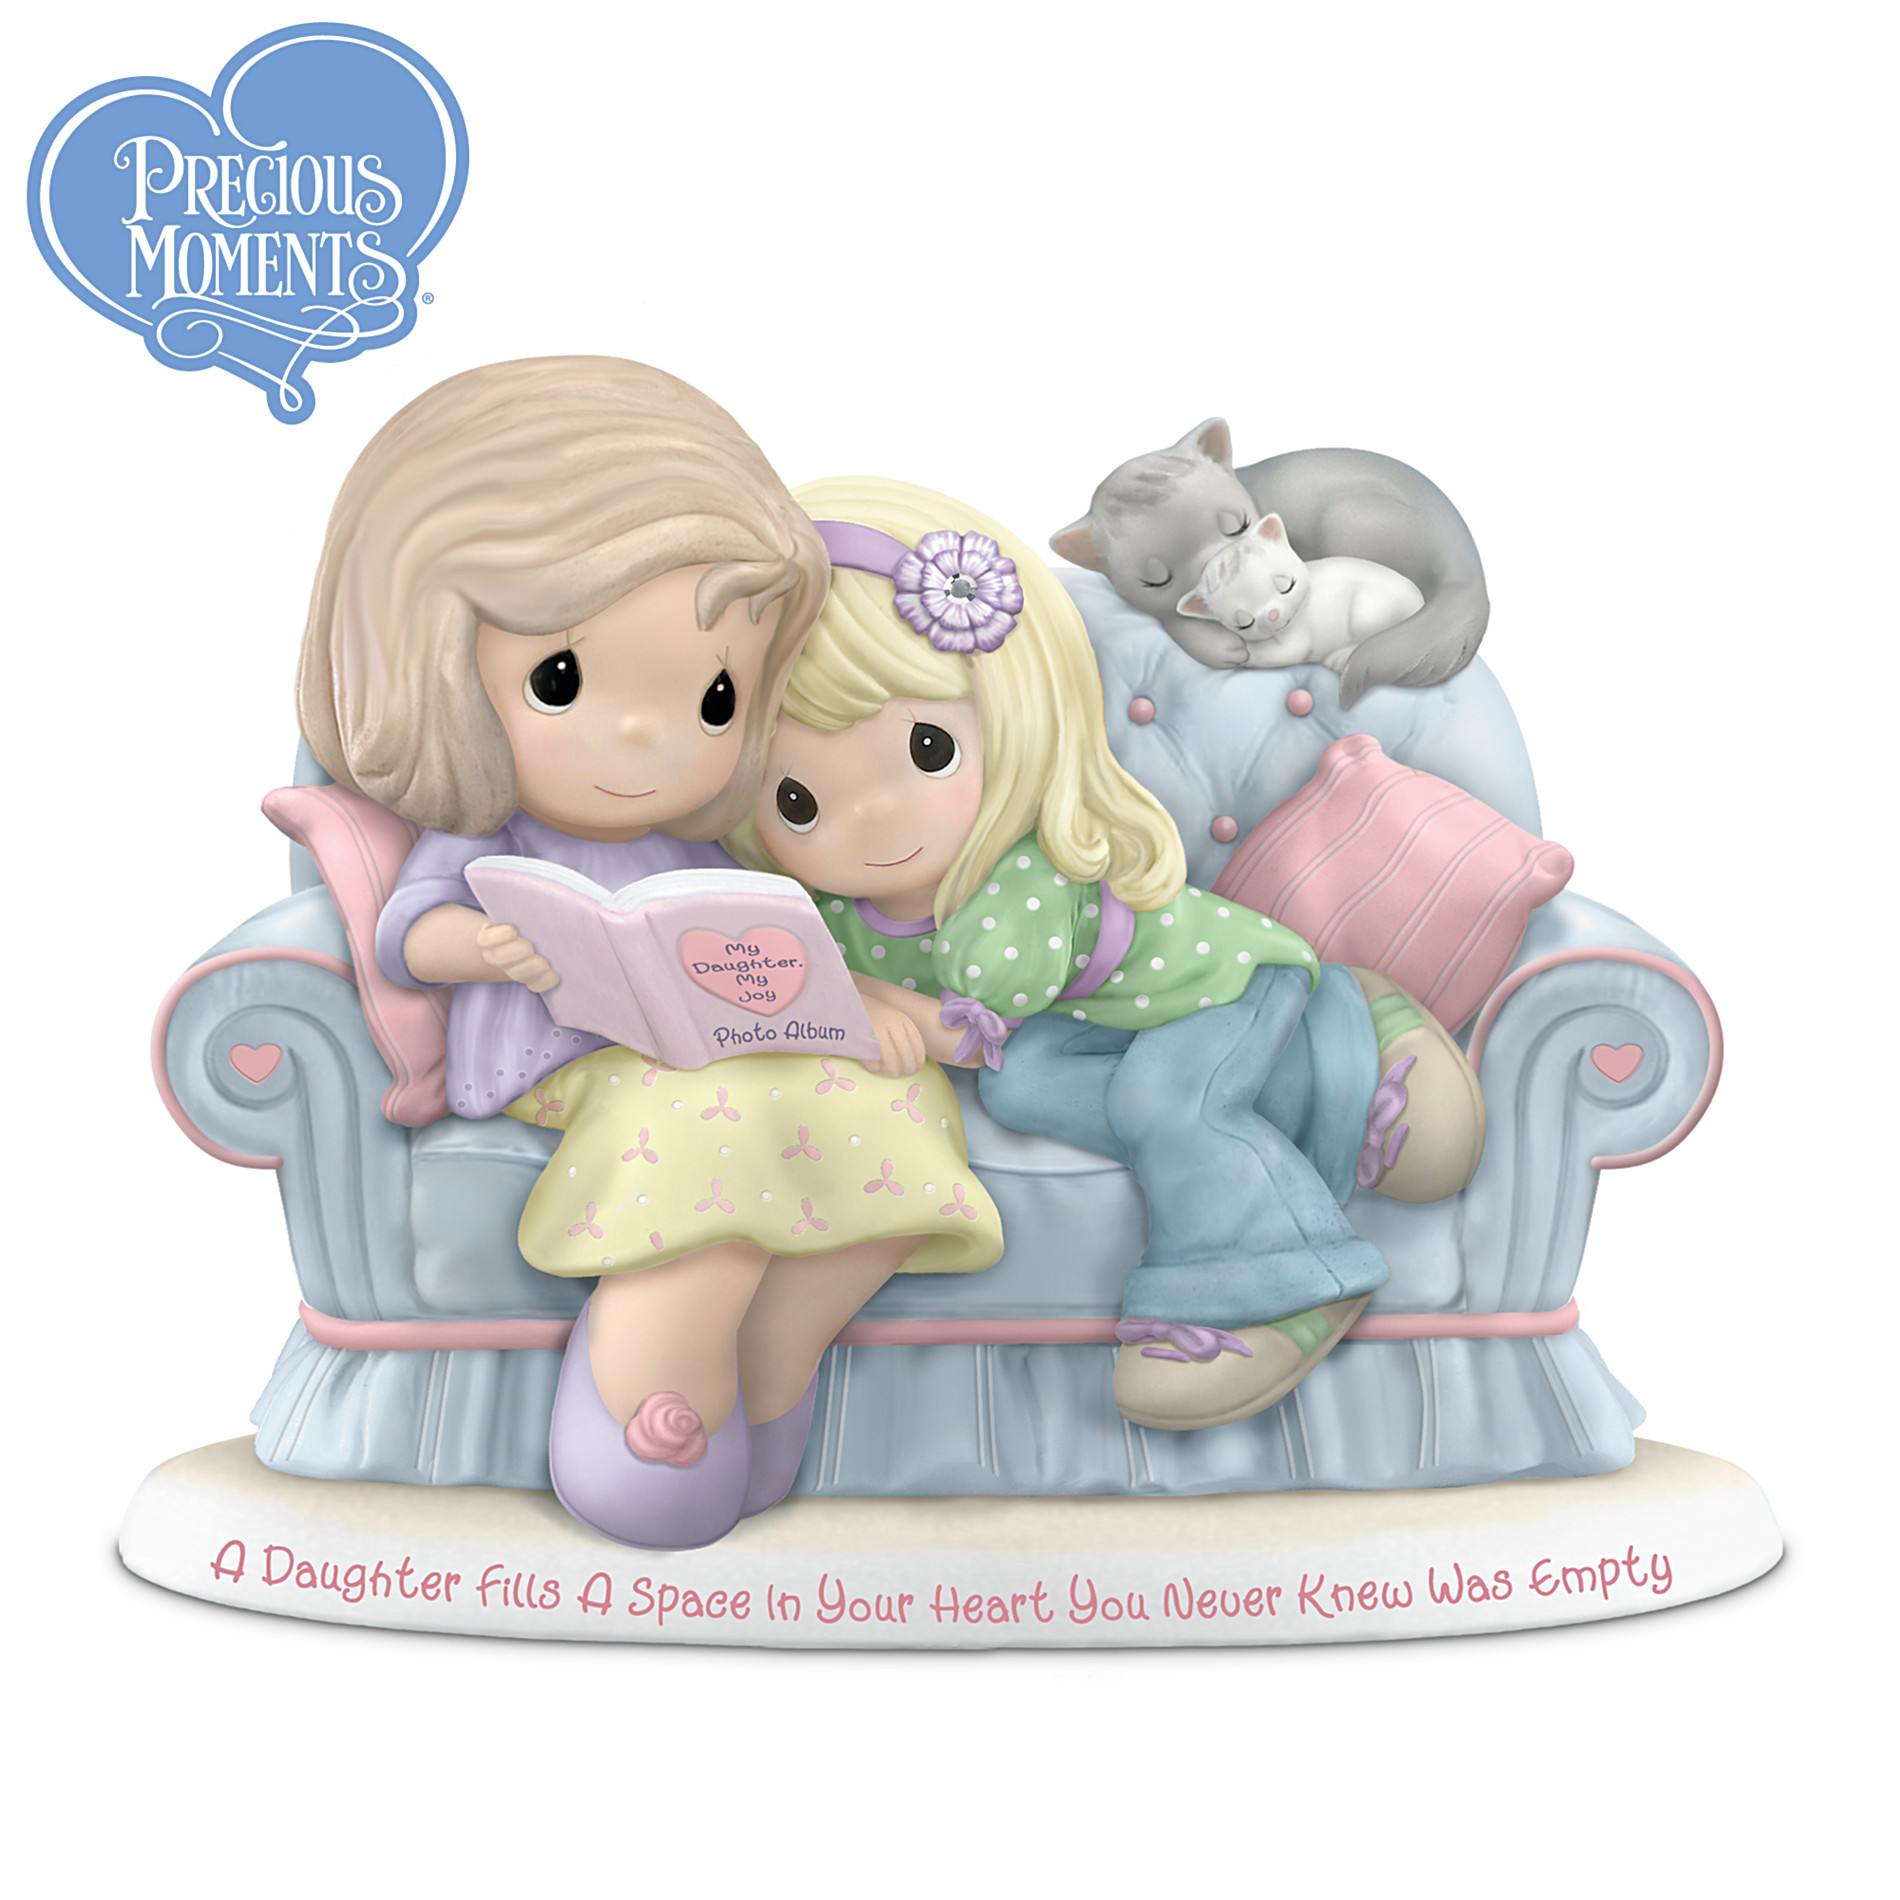 The Hamilton Collection Precious Moments Figurine: A Daughter Fills A Space In Your Heart You Never Knew Was Empty at Sears.com